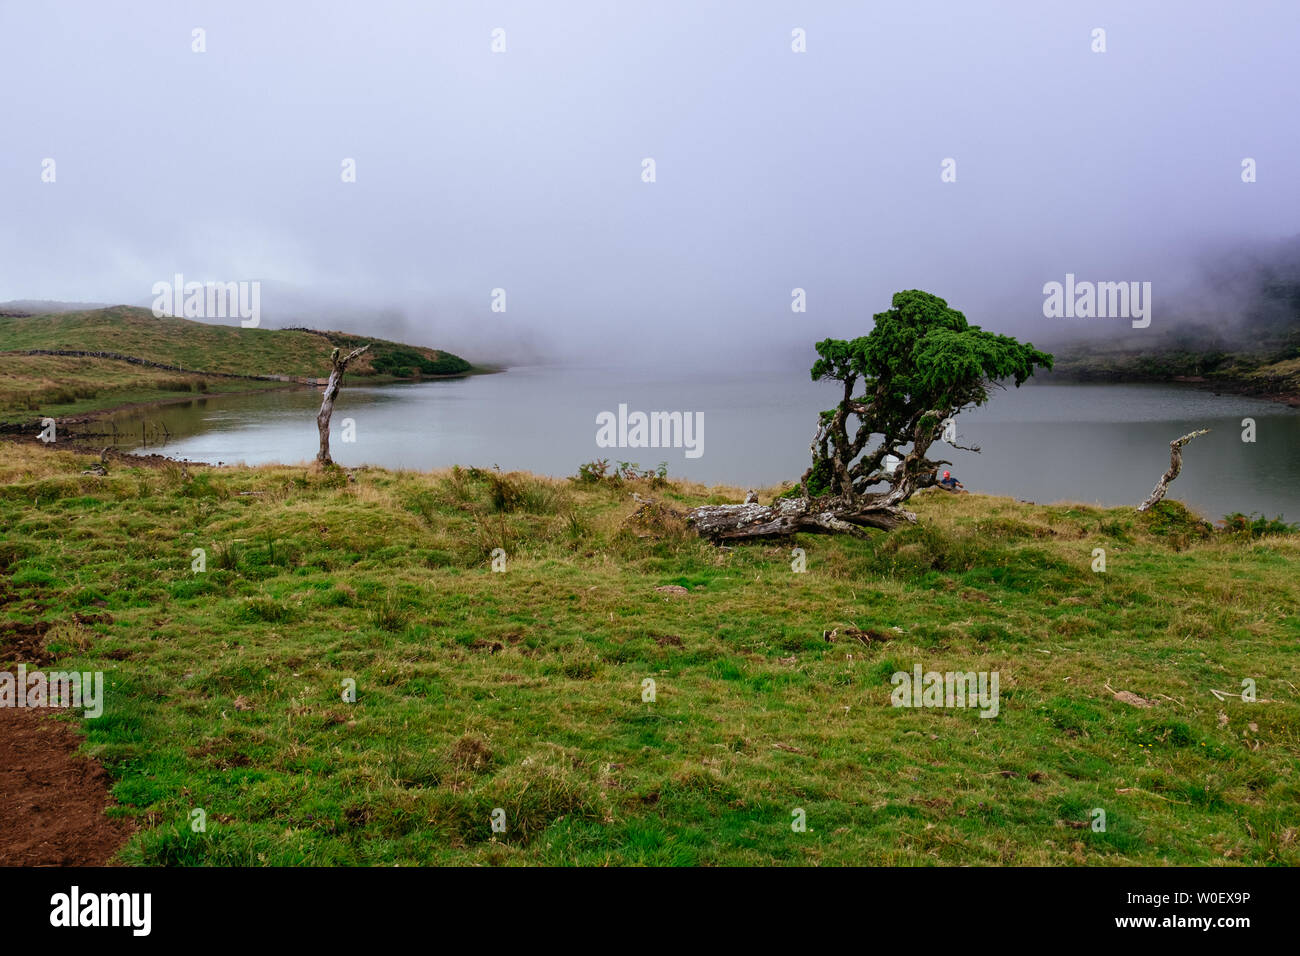 Captain's Lagoon, Pico Island, Portugal - August 2, 2018: a view of a typical Azorean Lagoon In a foggy day Stock Photo